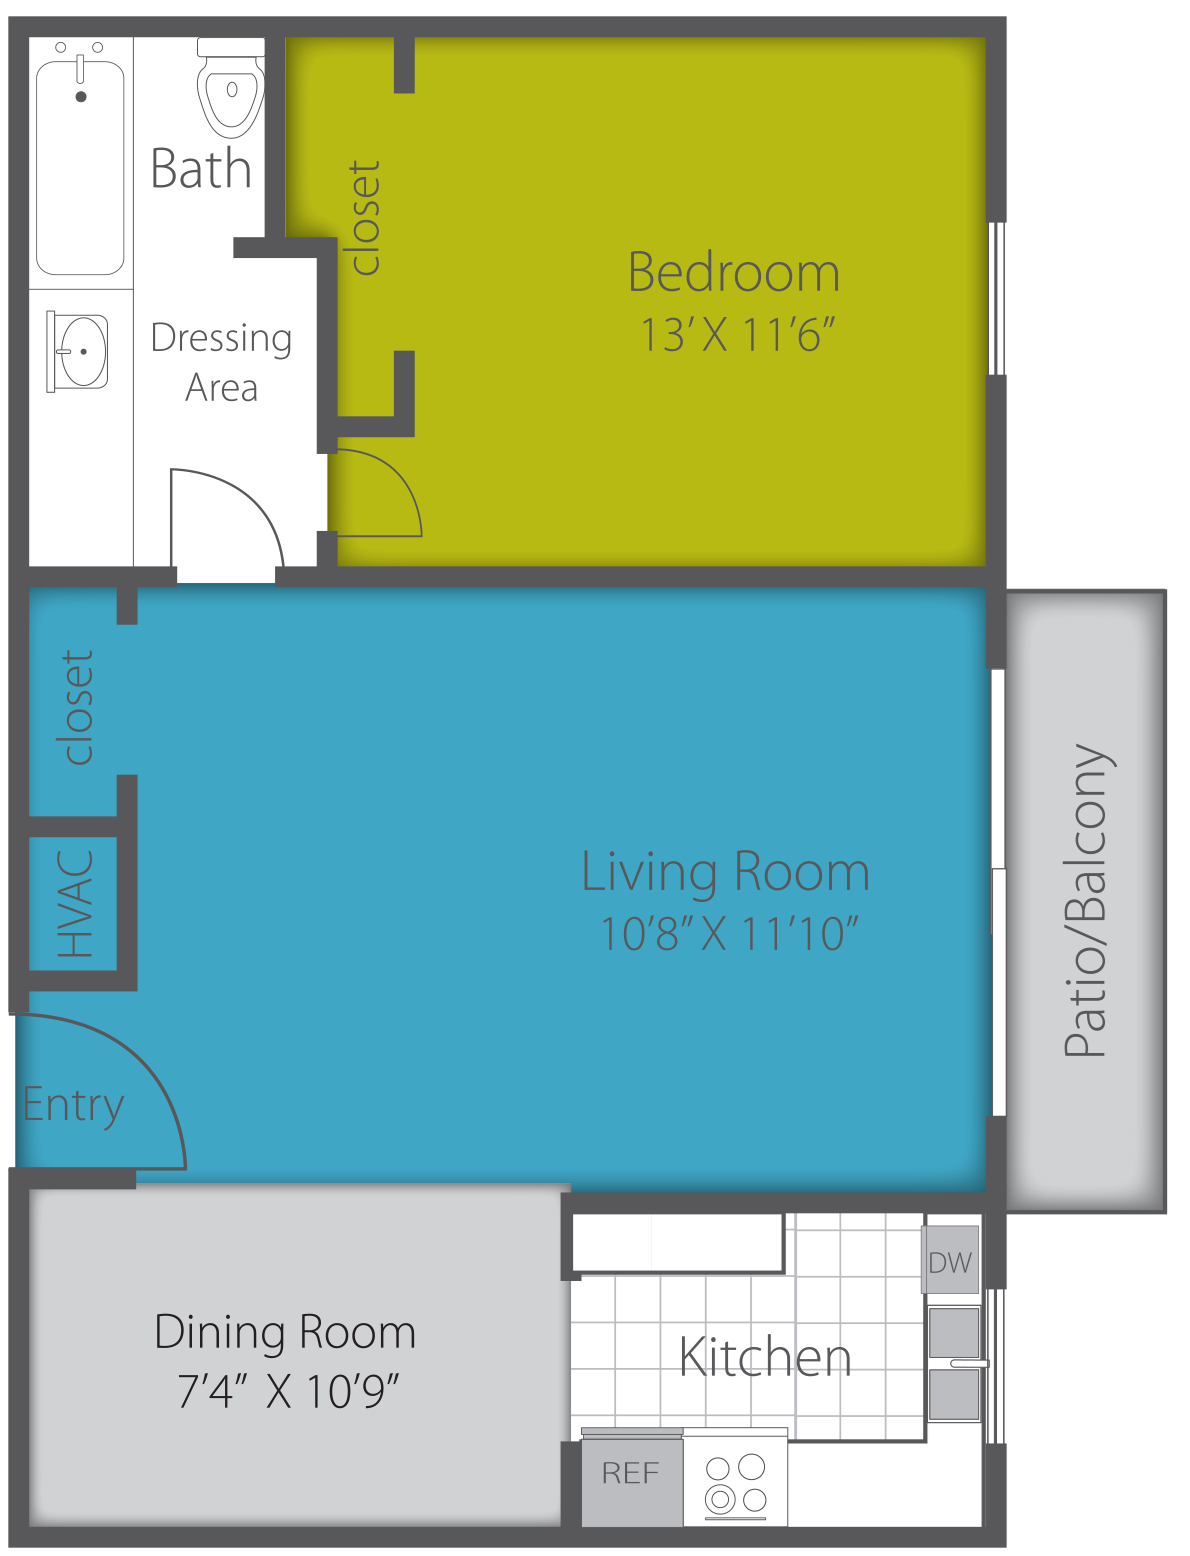 1X1 RENOVATED Floor Plan 4